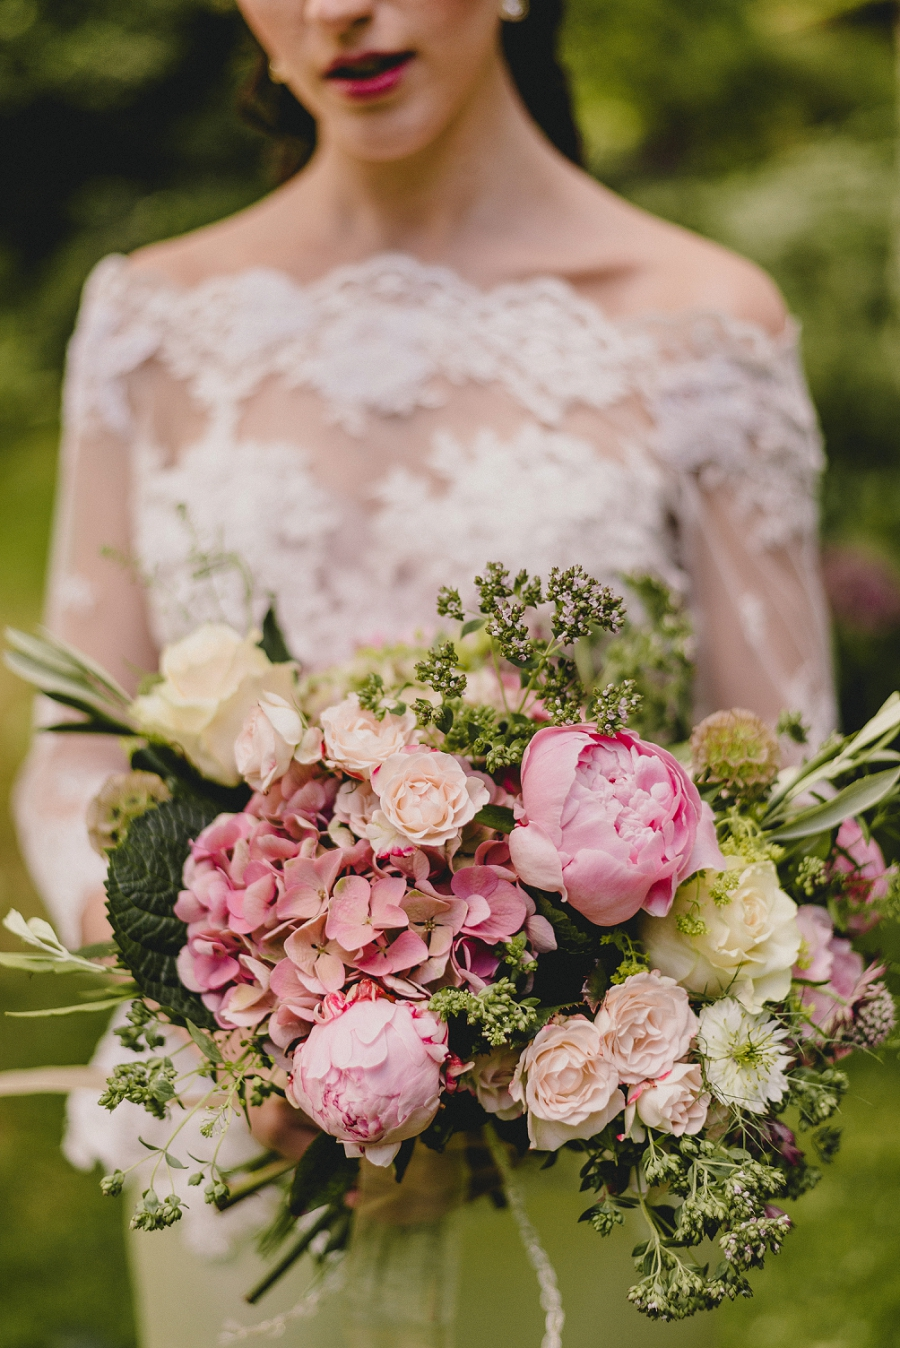 Heirloom wedding inspiration with Emily Andrews Events at Thurning Hall. Photo credit Benjamin Mathers Photography (12)